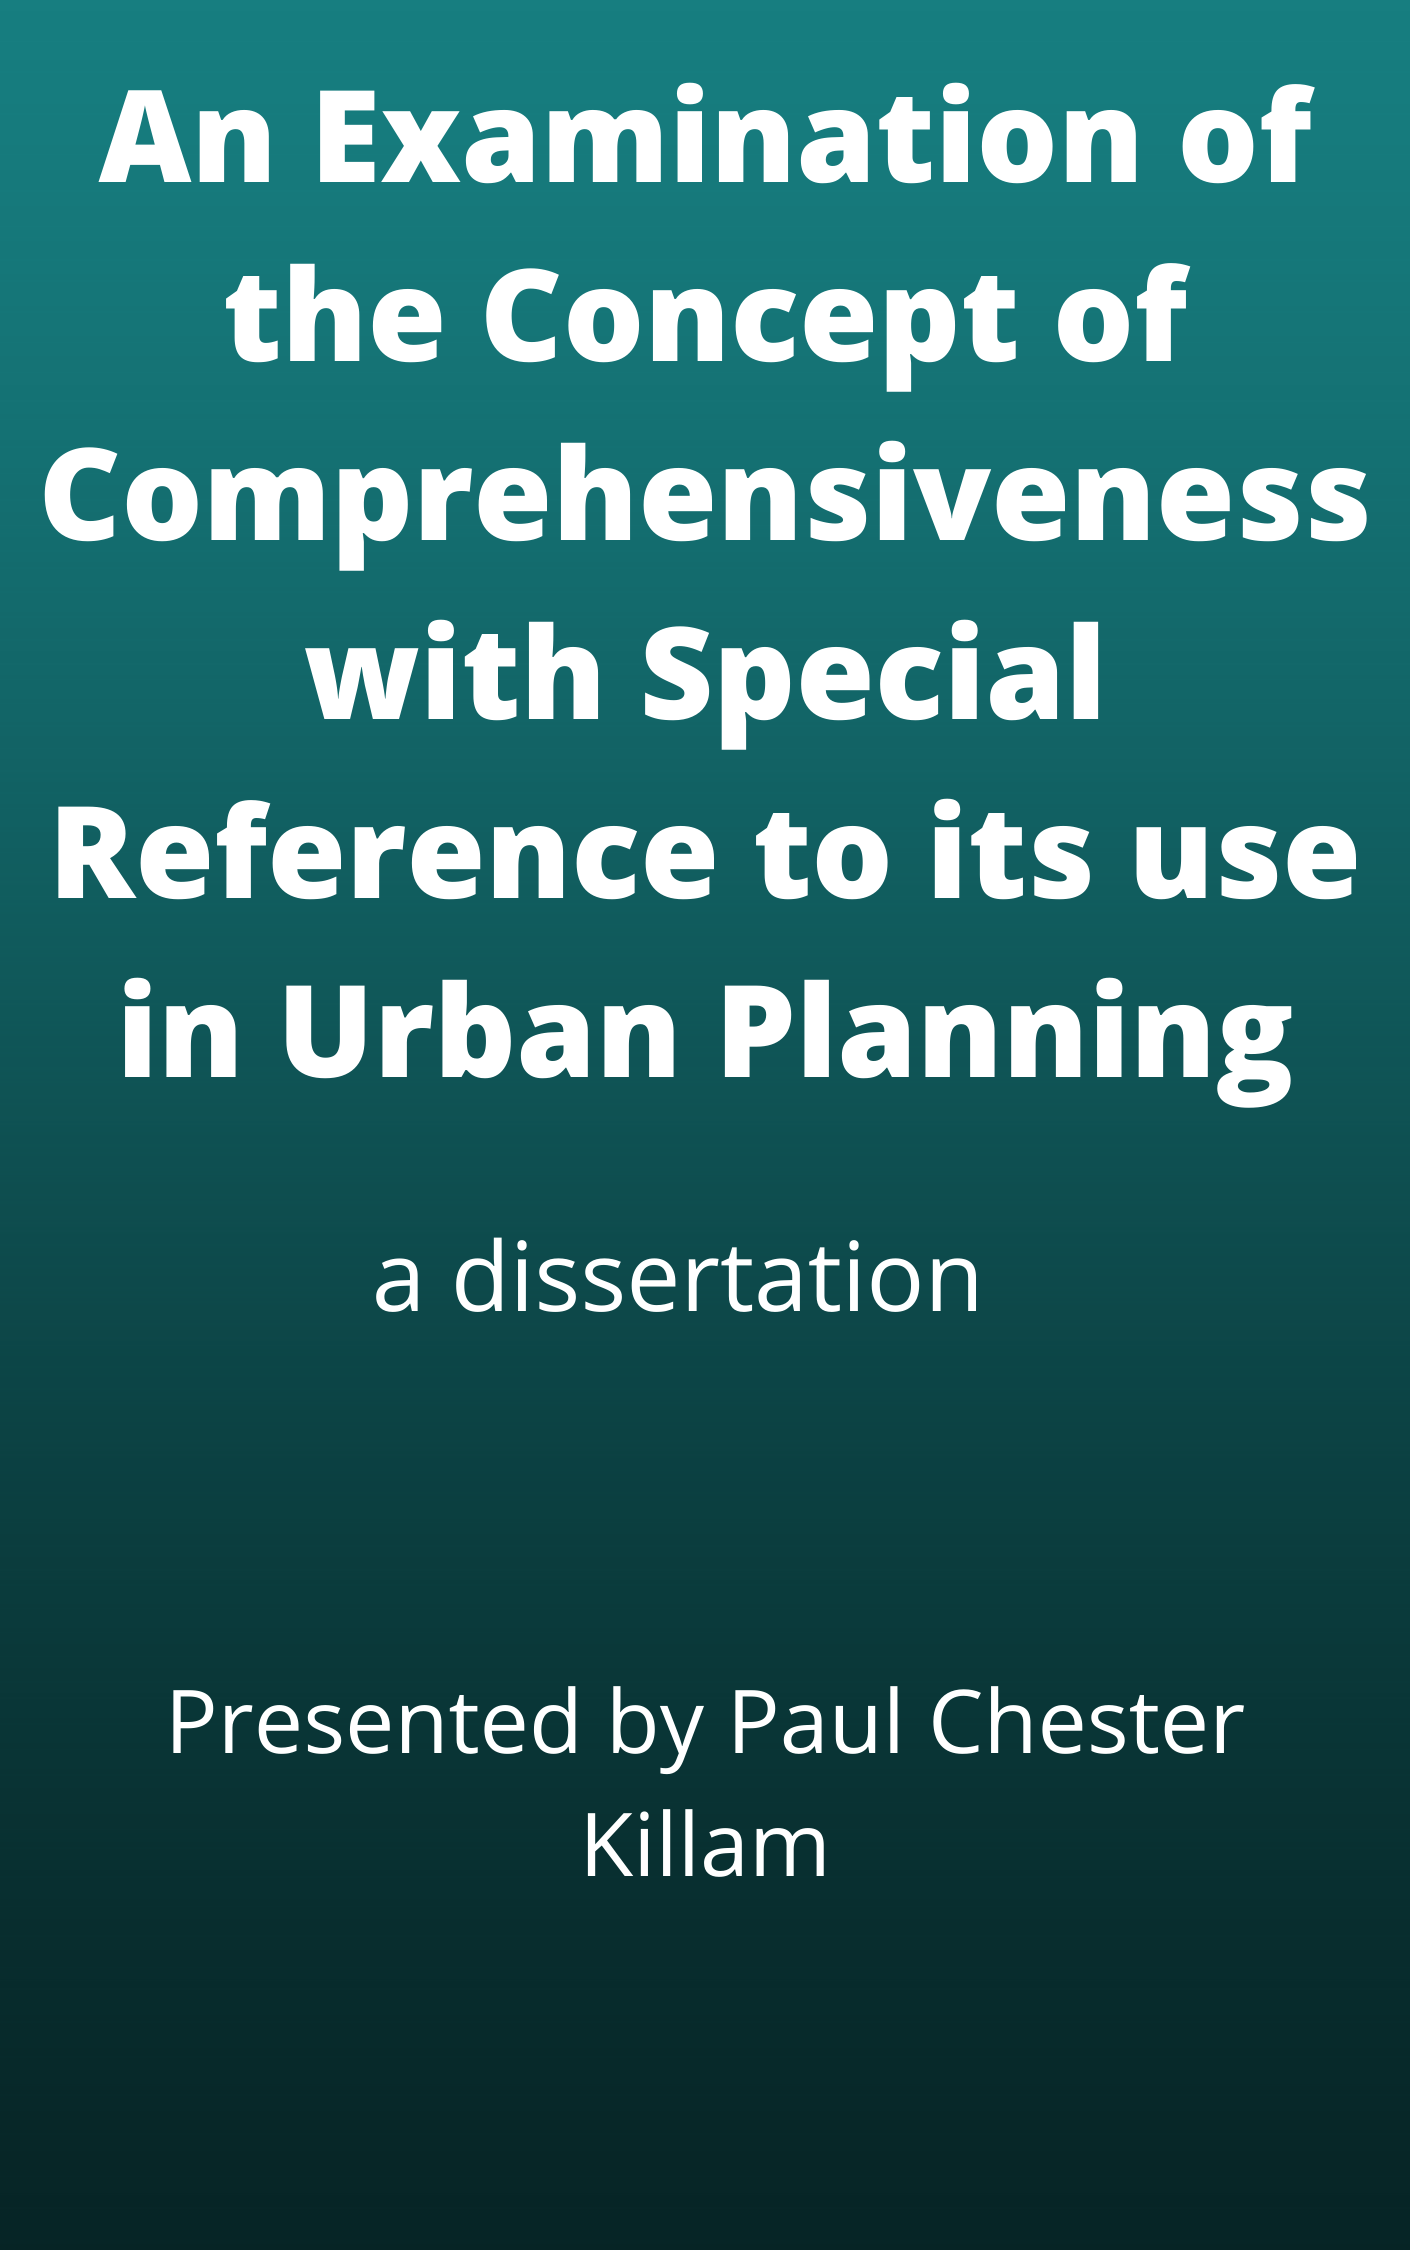 An Examination of the Concept of Comprehensiveness with Special Reference to its use in Urban Planning : A Dissertation